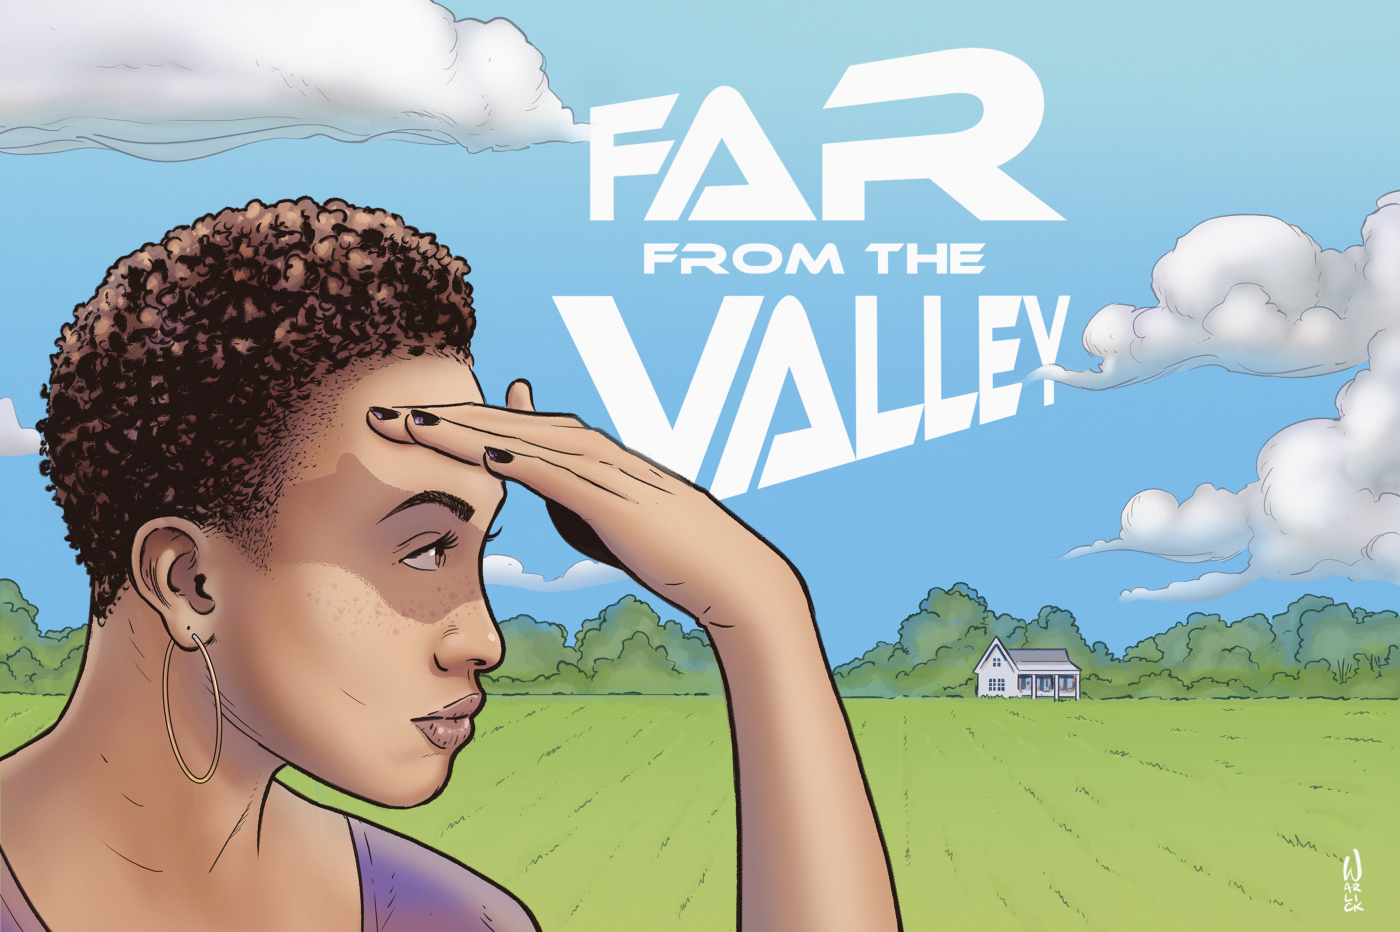 Far from the Valley illustration and logo